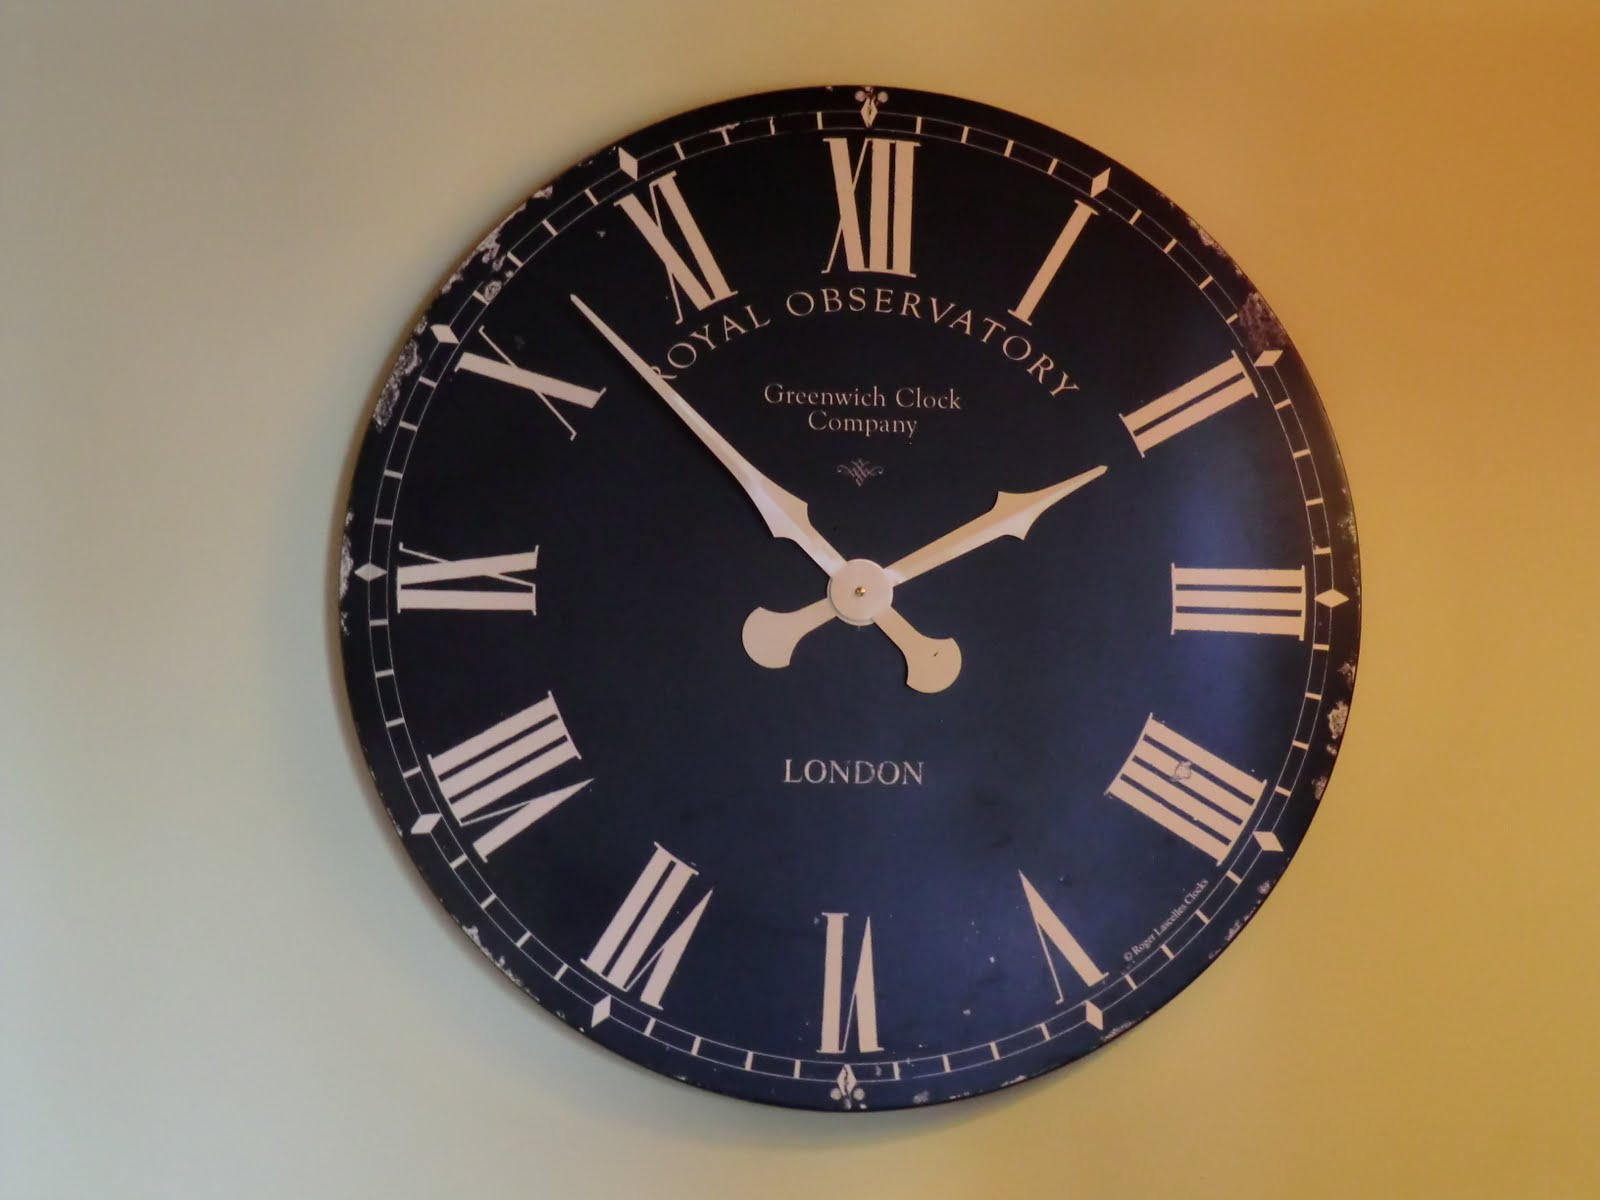 CIMG9902 Wall clock at The Sportsman. Time to make a move!